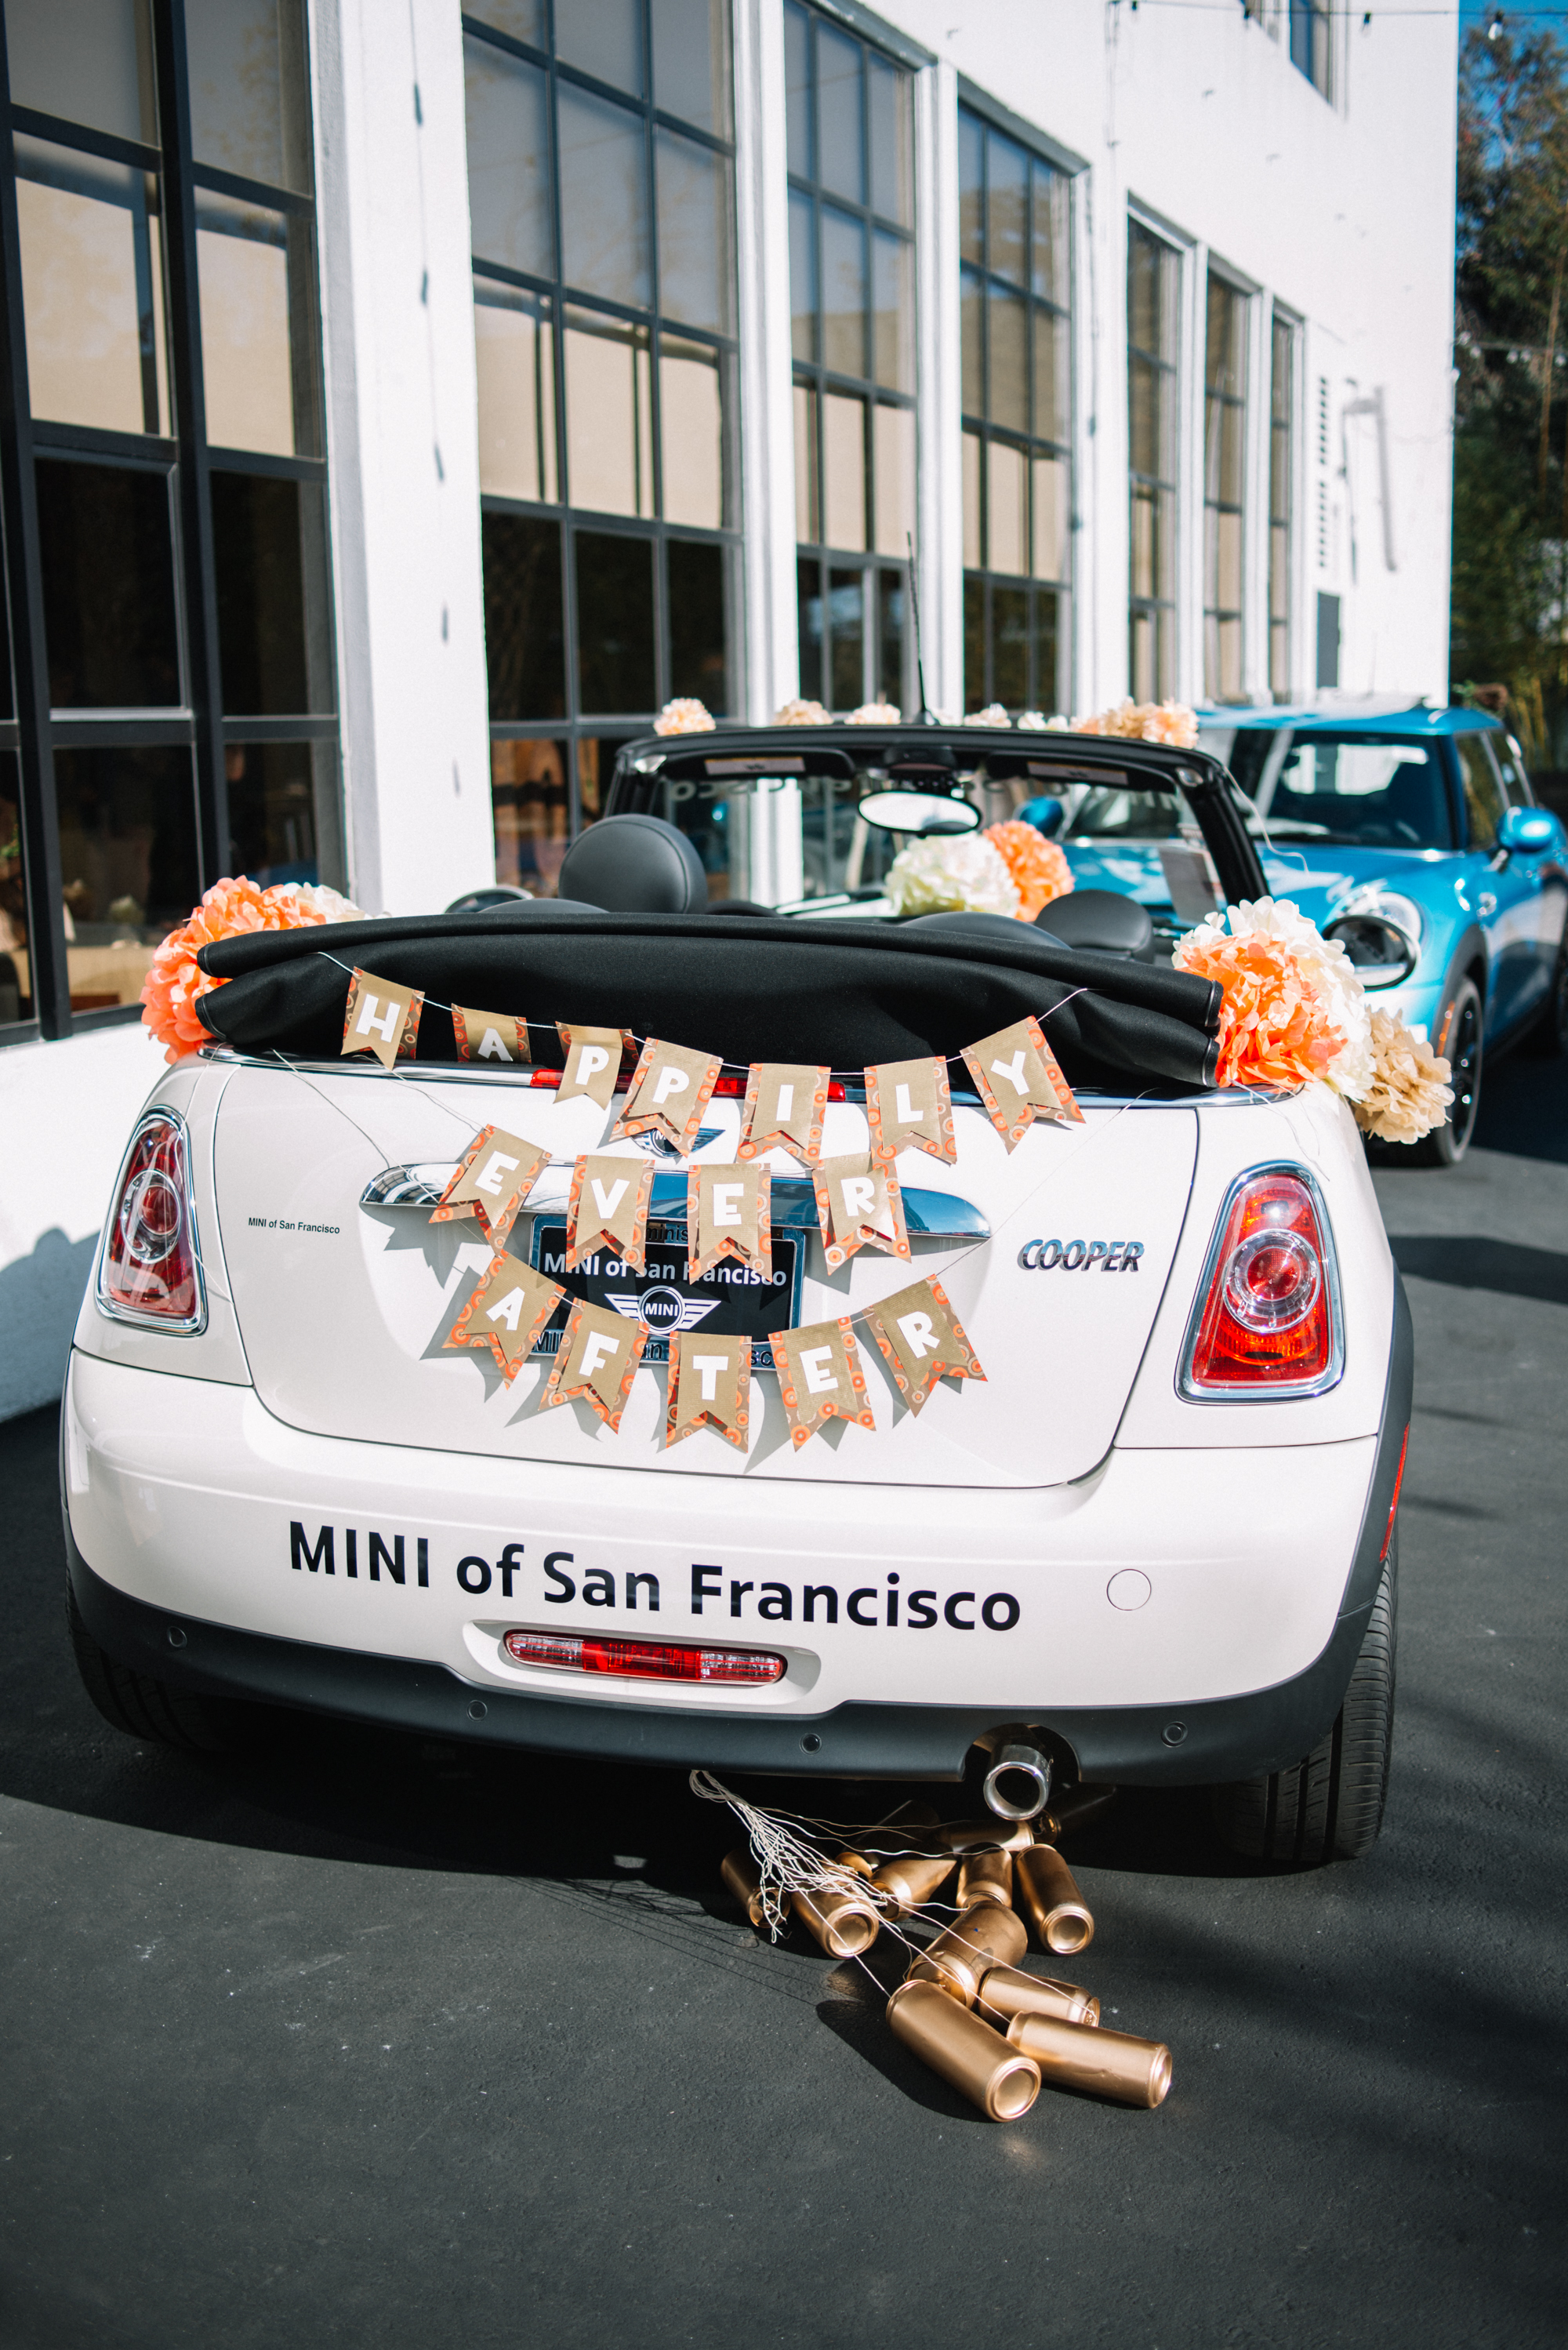 MINI of San Francisco